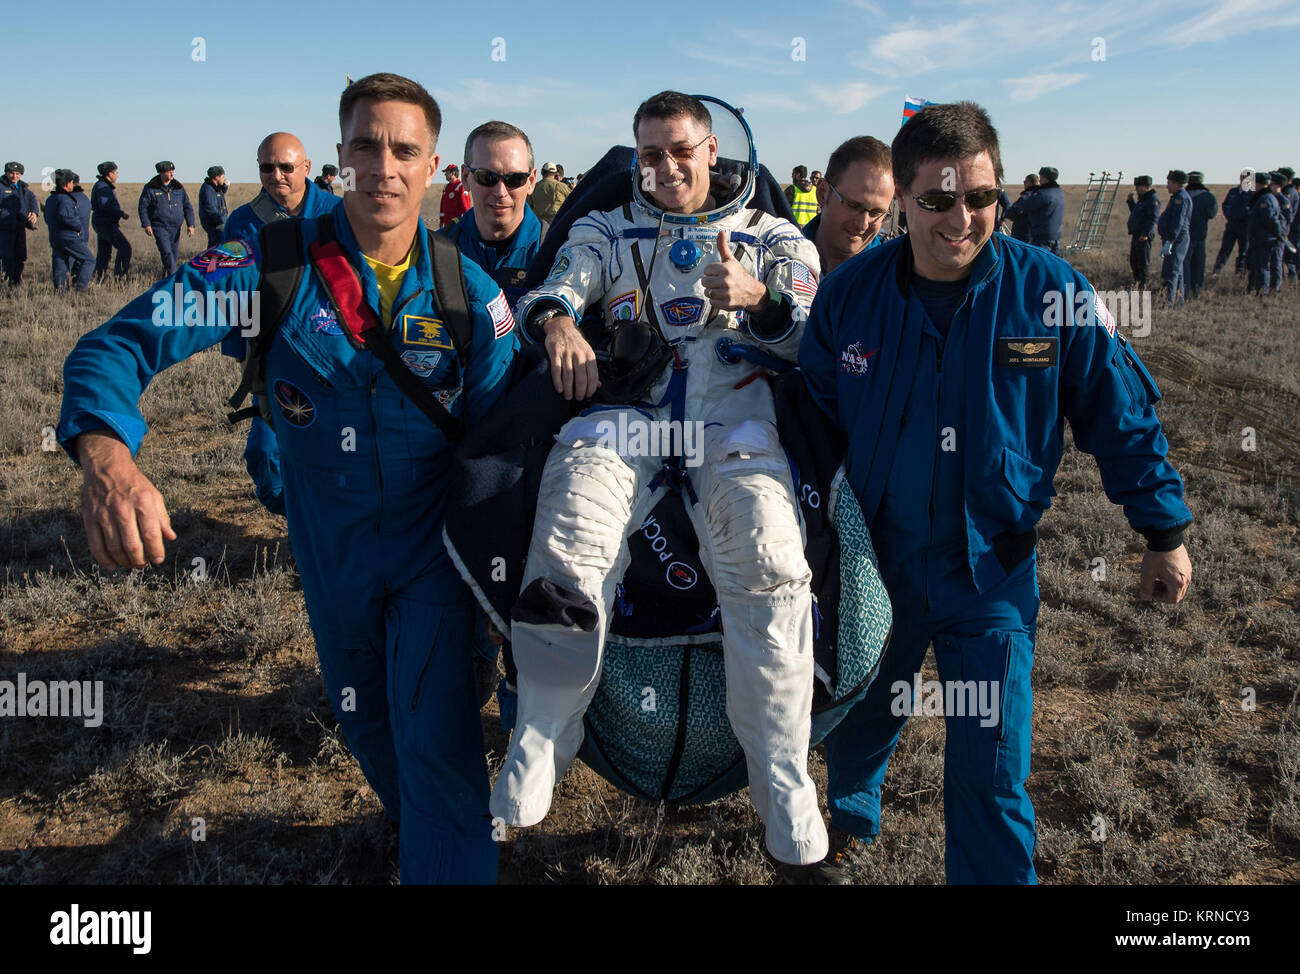 NASA astronaut Shane Kimbrough is carried into a medical tent shortly after he, Russian cosmonaut Sergey Ryzhikov - Stock Image